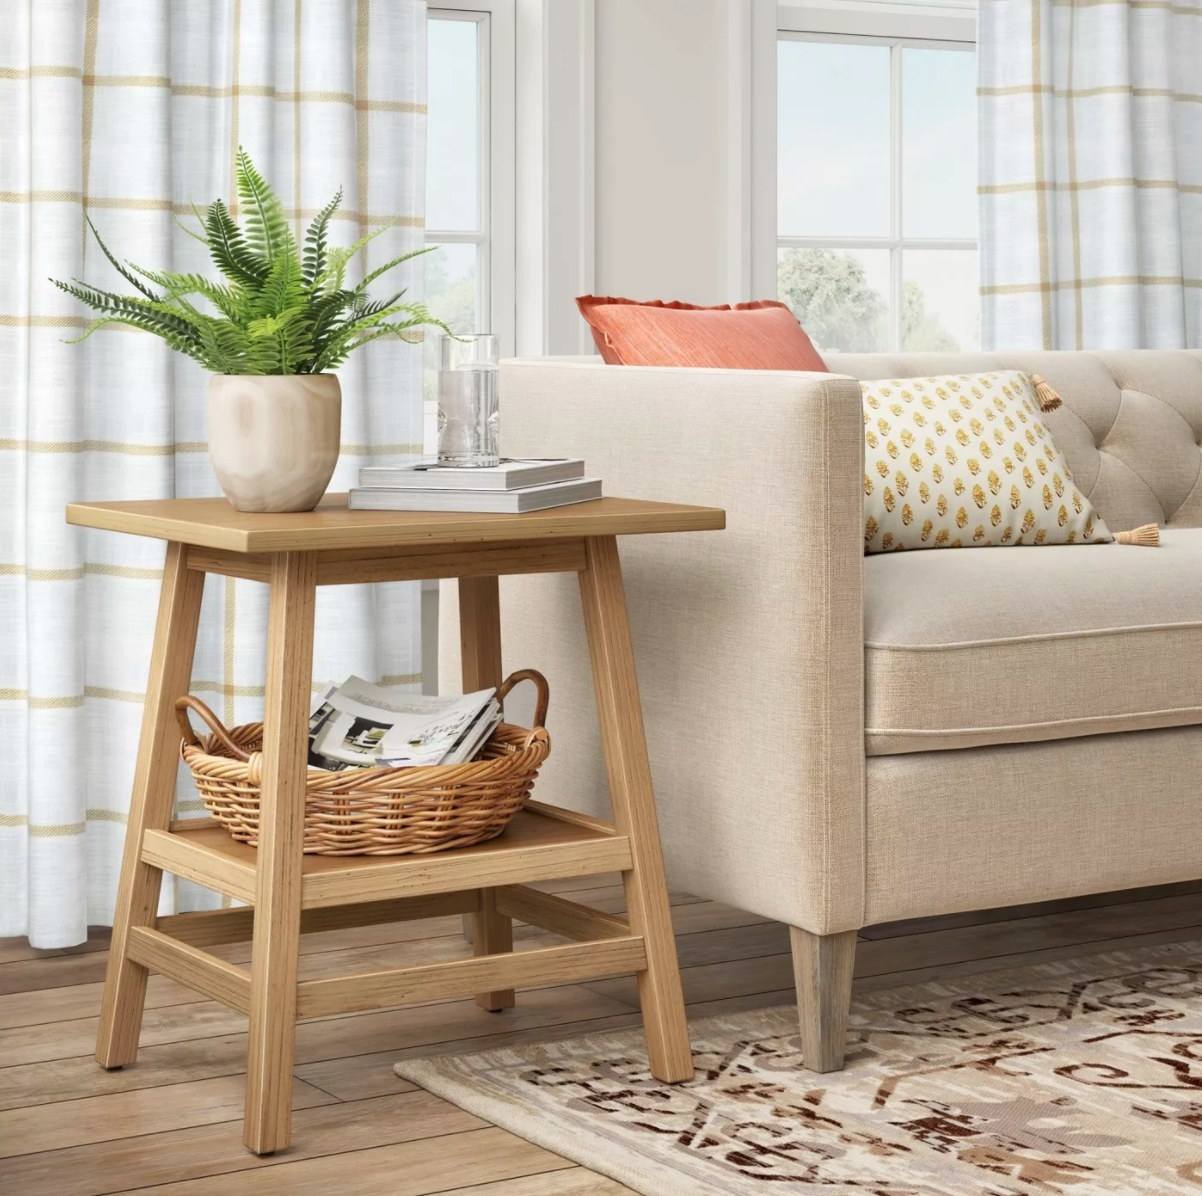 the light wood end table